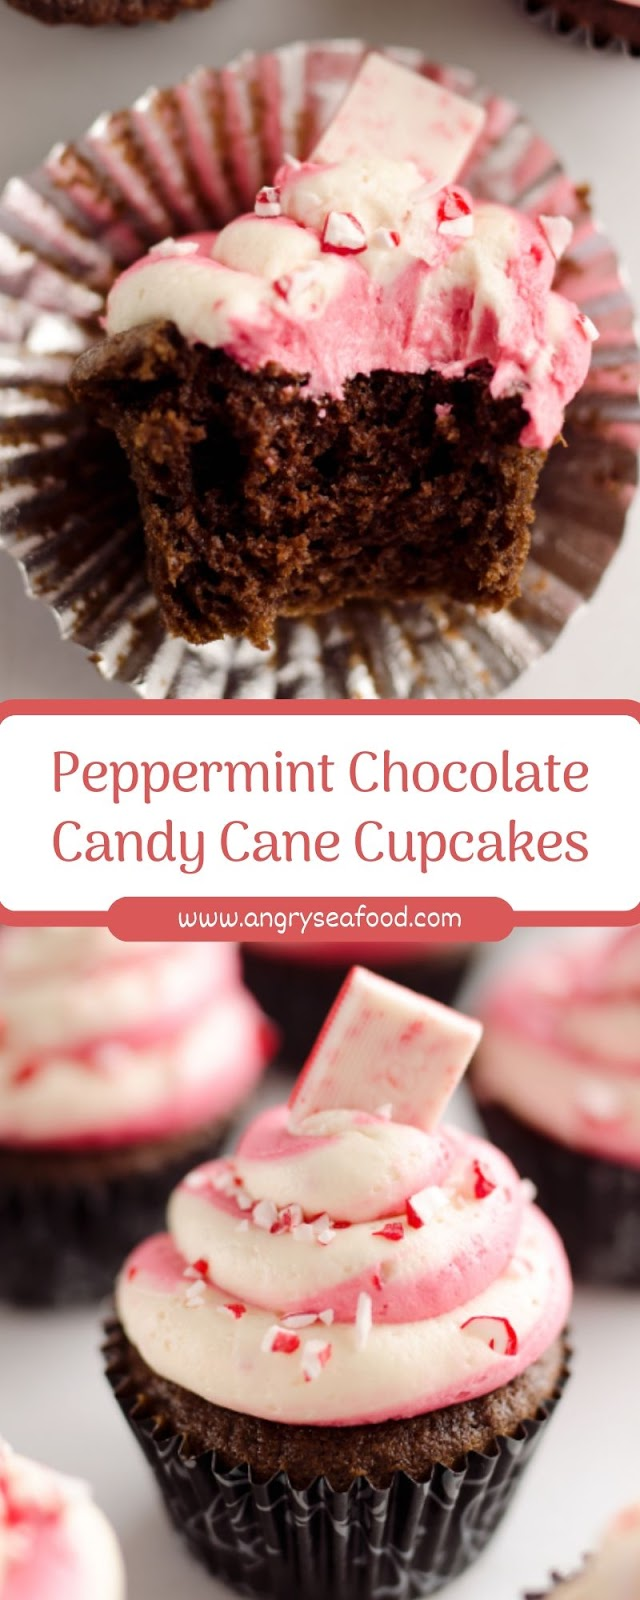 Peppermint Chocolate Candy Cane Cupcakes